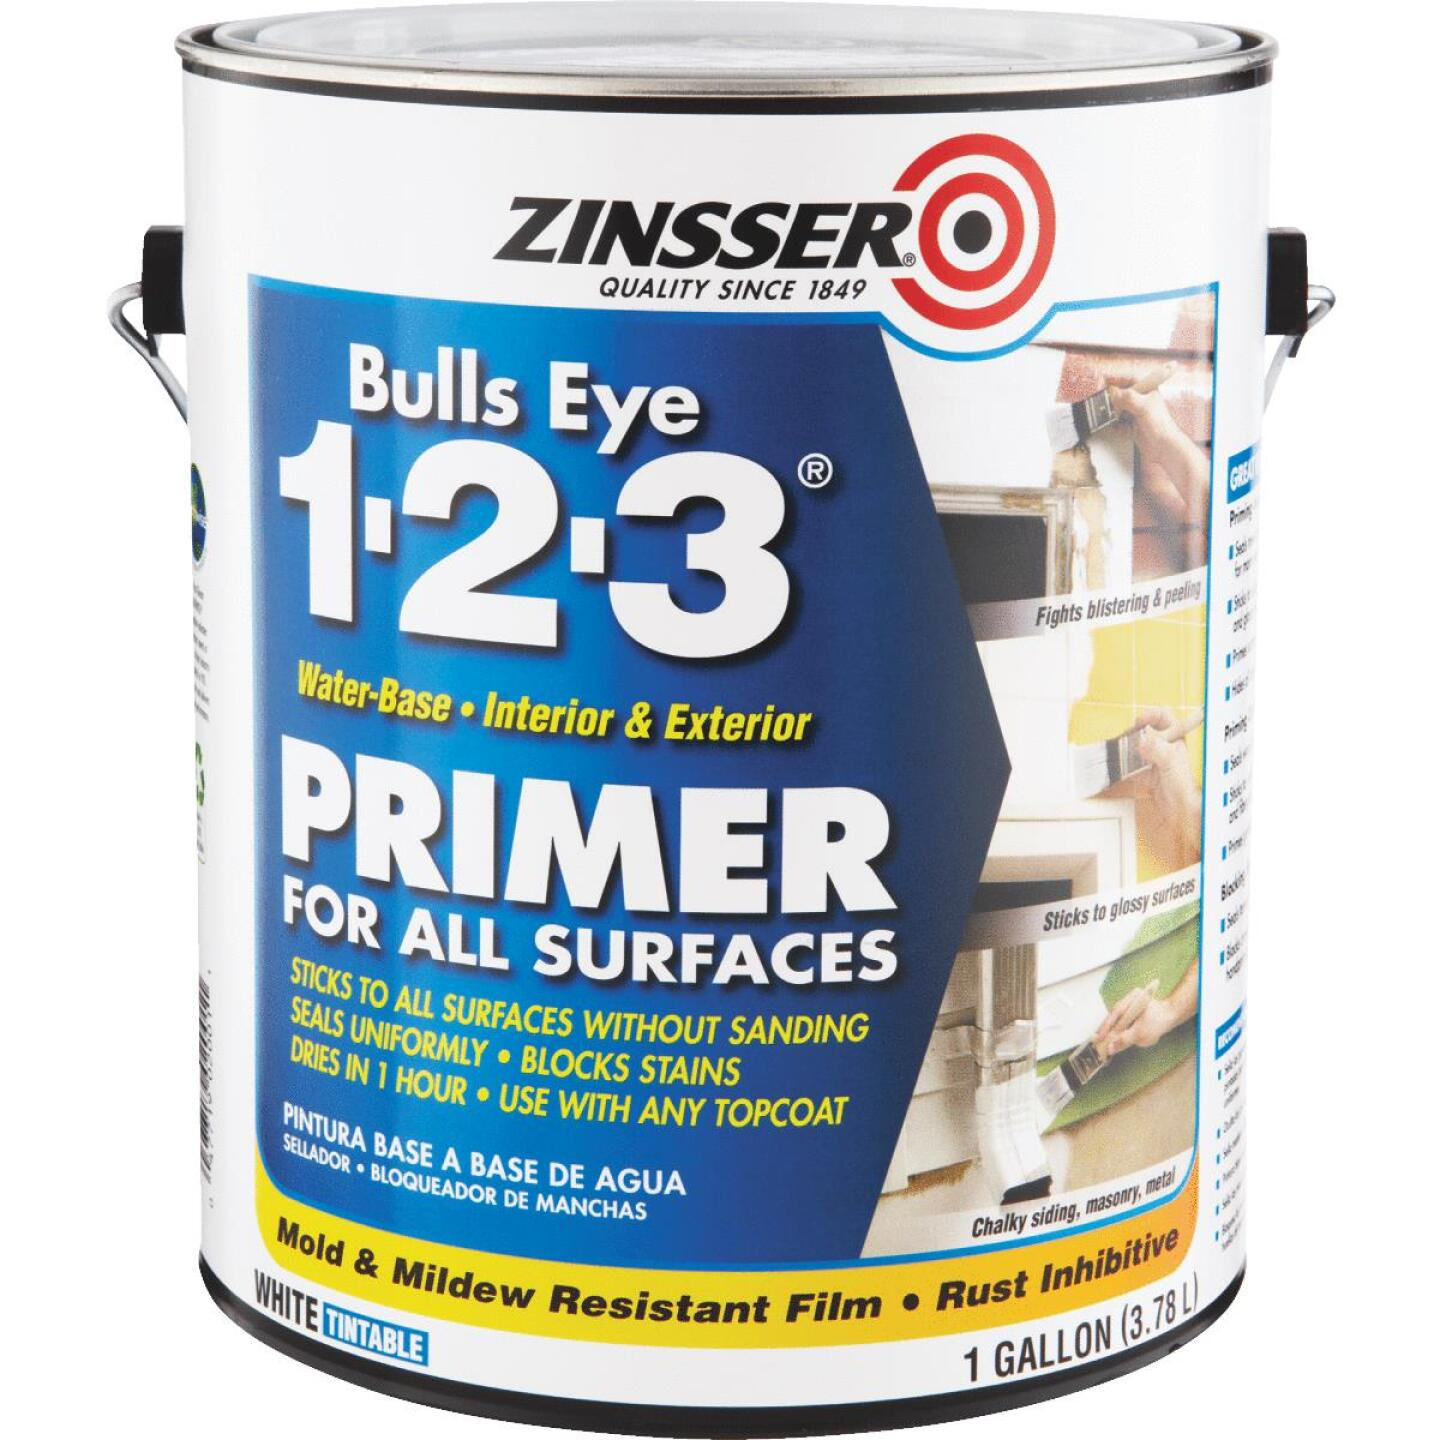 Zinsser Bulls Eye 1-2-3 Water-Base Interior/Exterior Stain Blocking Primer, White, 1 Gal. Image 1